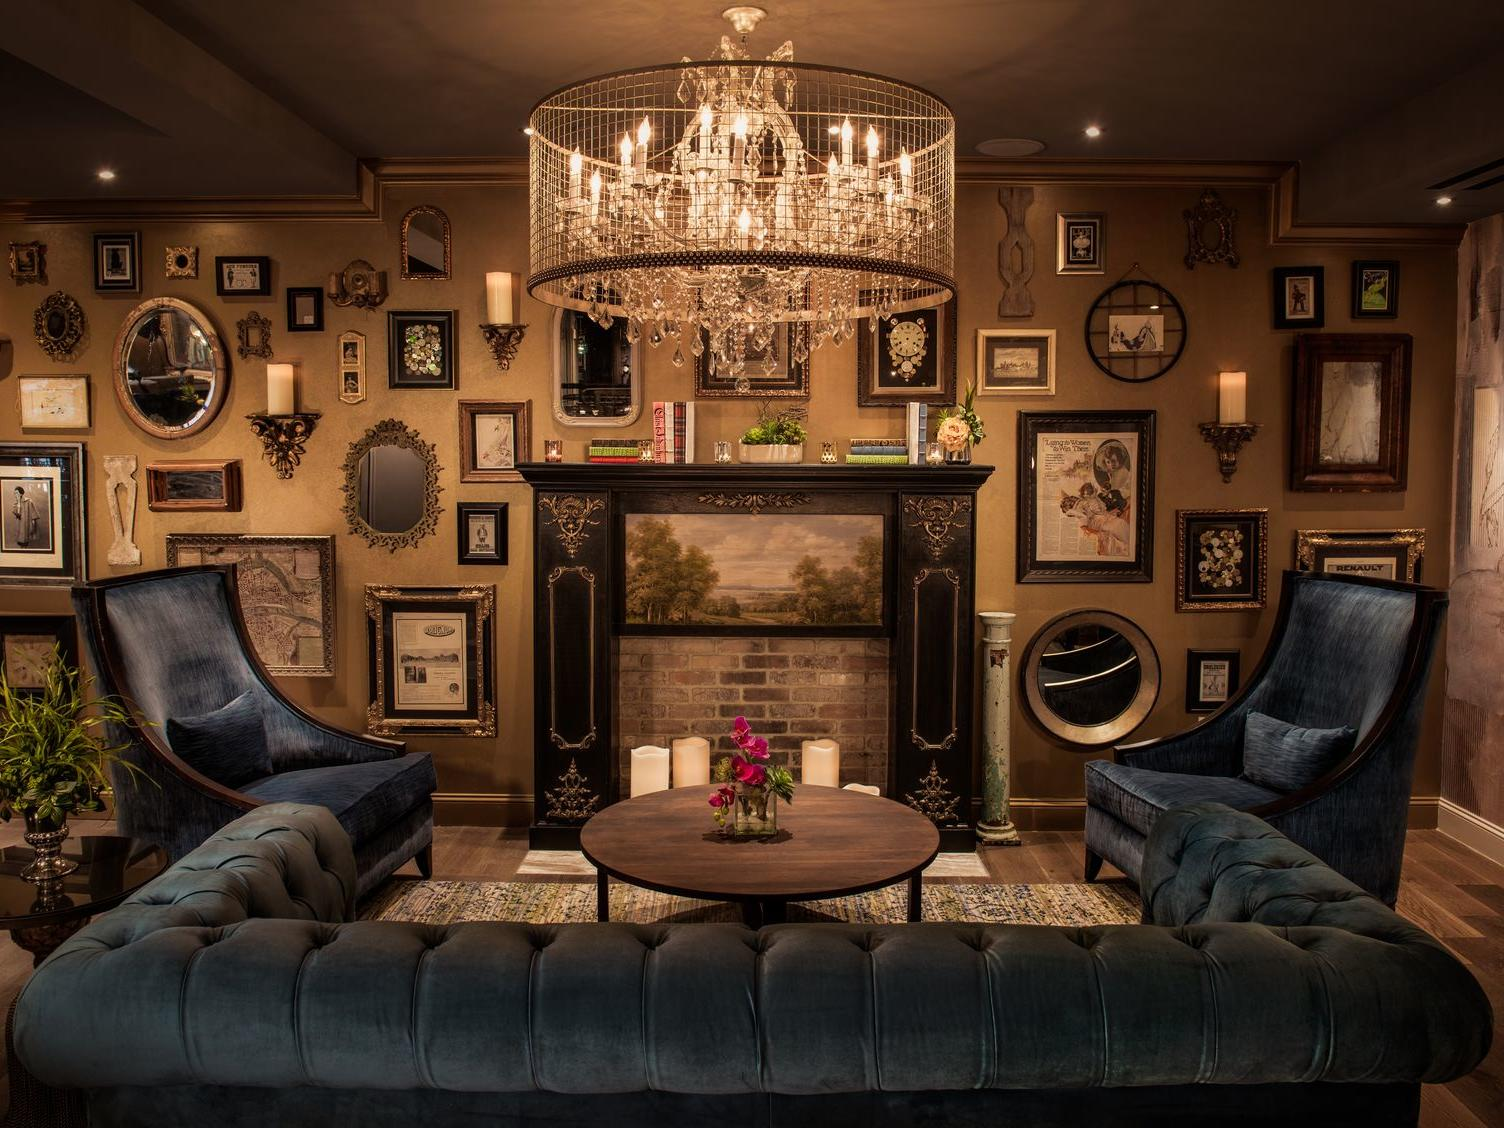 antique lounge area with block couches and wall art